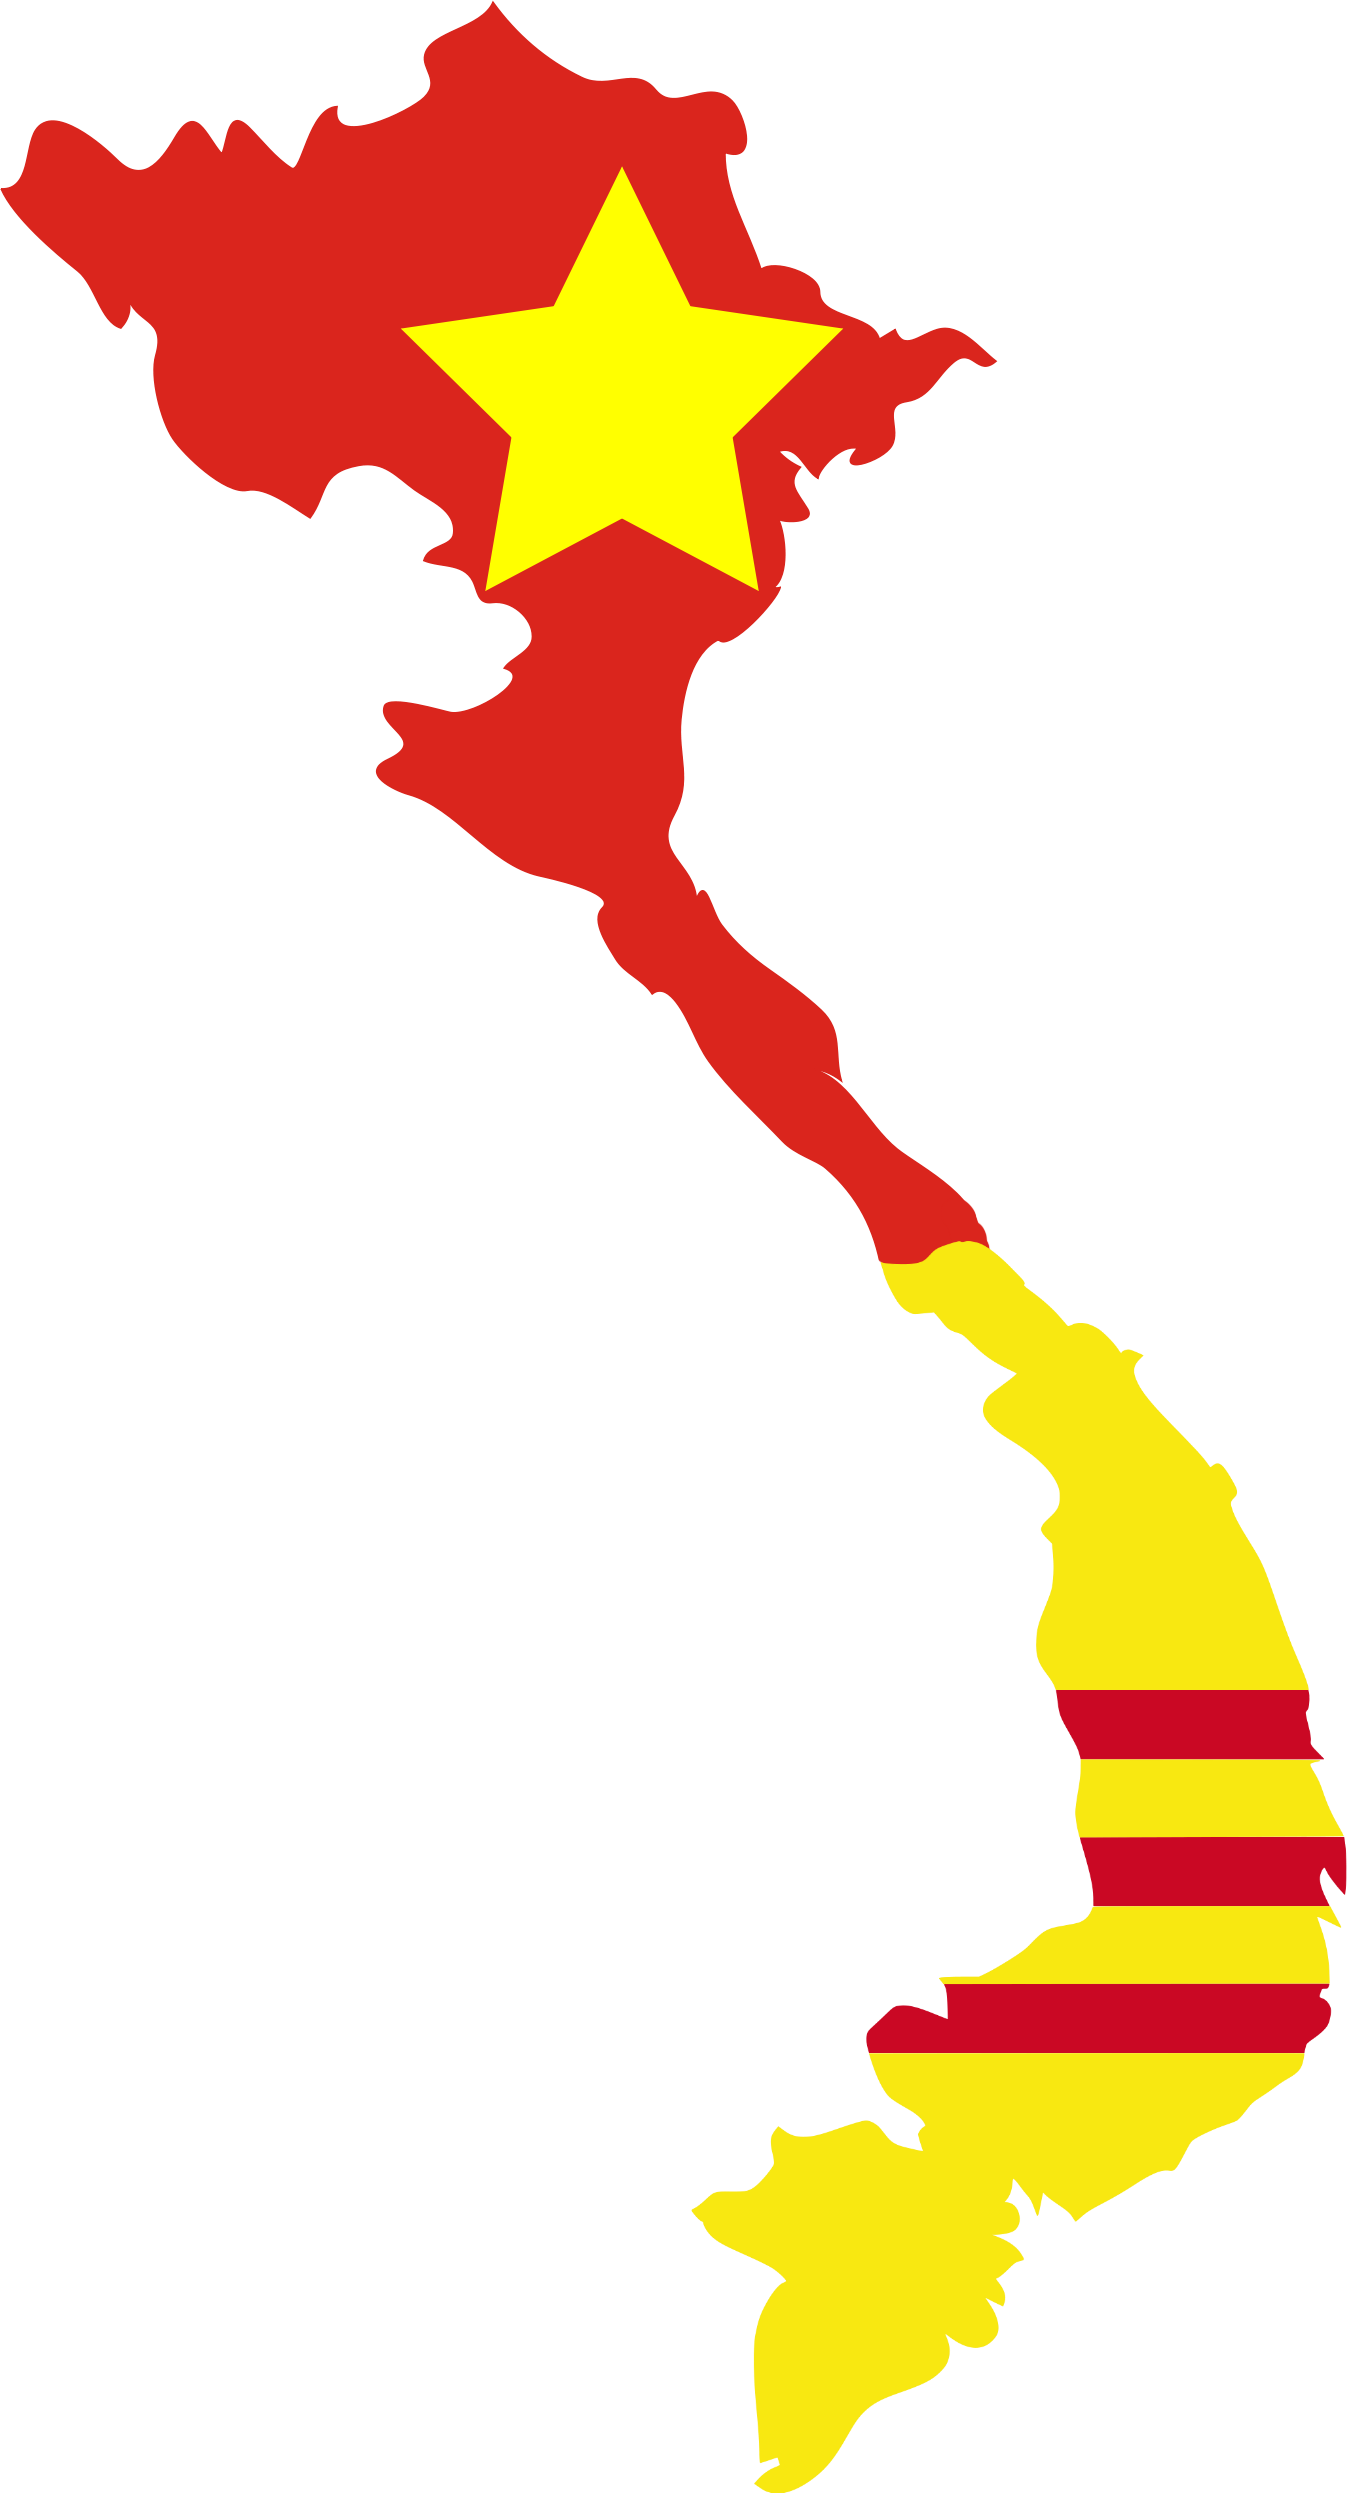 united states preventing north vietnam to unify with south vietnam The korean war began in 1950 as north korea invaded south  invaded the south in order to unify vietnam  against the united states the south vietnamese.